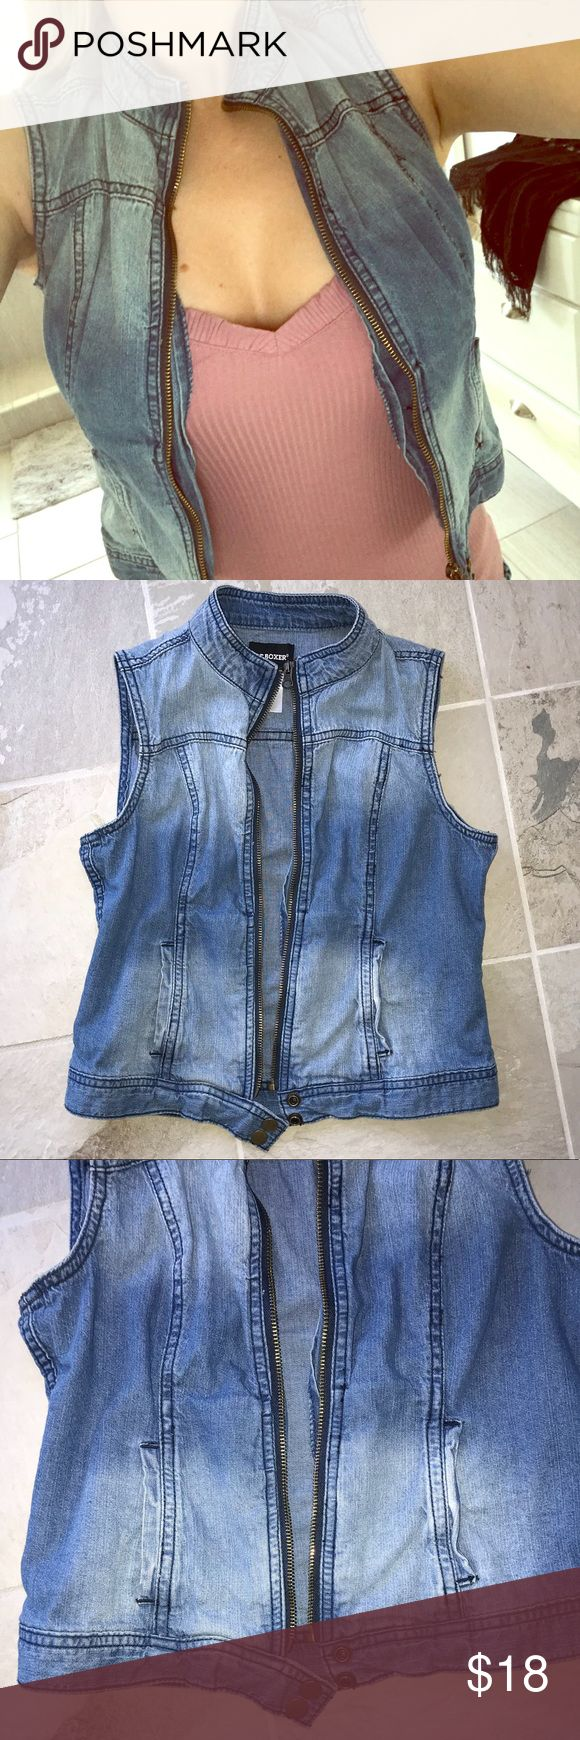 NEW light denim zip up Moto vest Brand new without tags. Light denim wash with intended fading. Zip up with bottom snaps. Tags: free people Zara ASOS Zappos Nordstrom lulus Macy's Anthropologie brandy Melville forever21 Charlotte Russe Jackets & Coats Vests